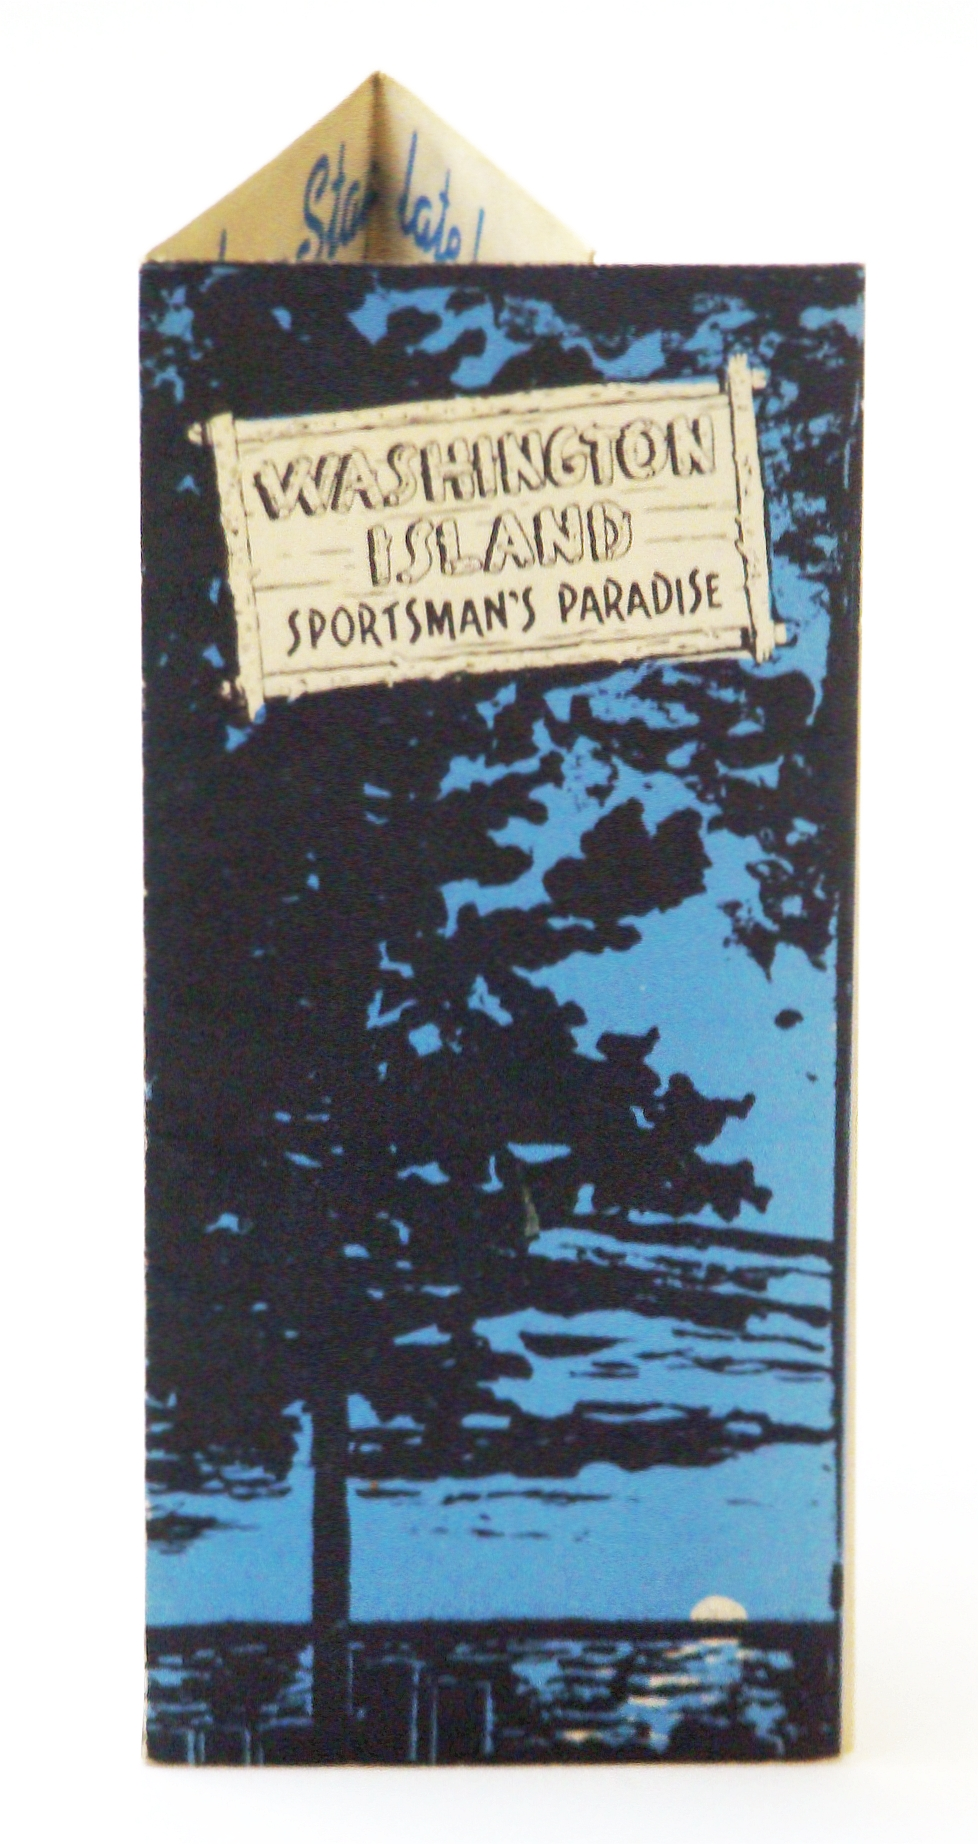 Image for Promotional Six-Panel Brochure / Map of Washington Island, Wisconsin - Sportsman's Paradise